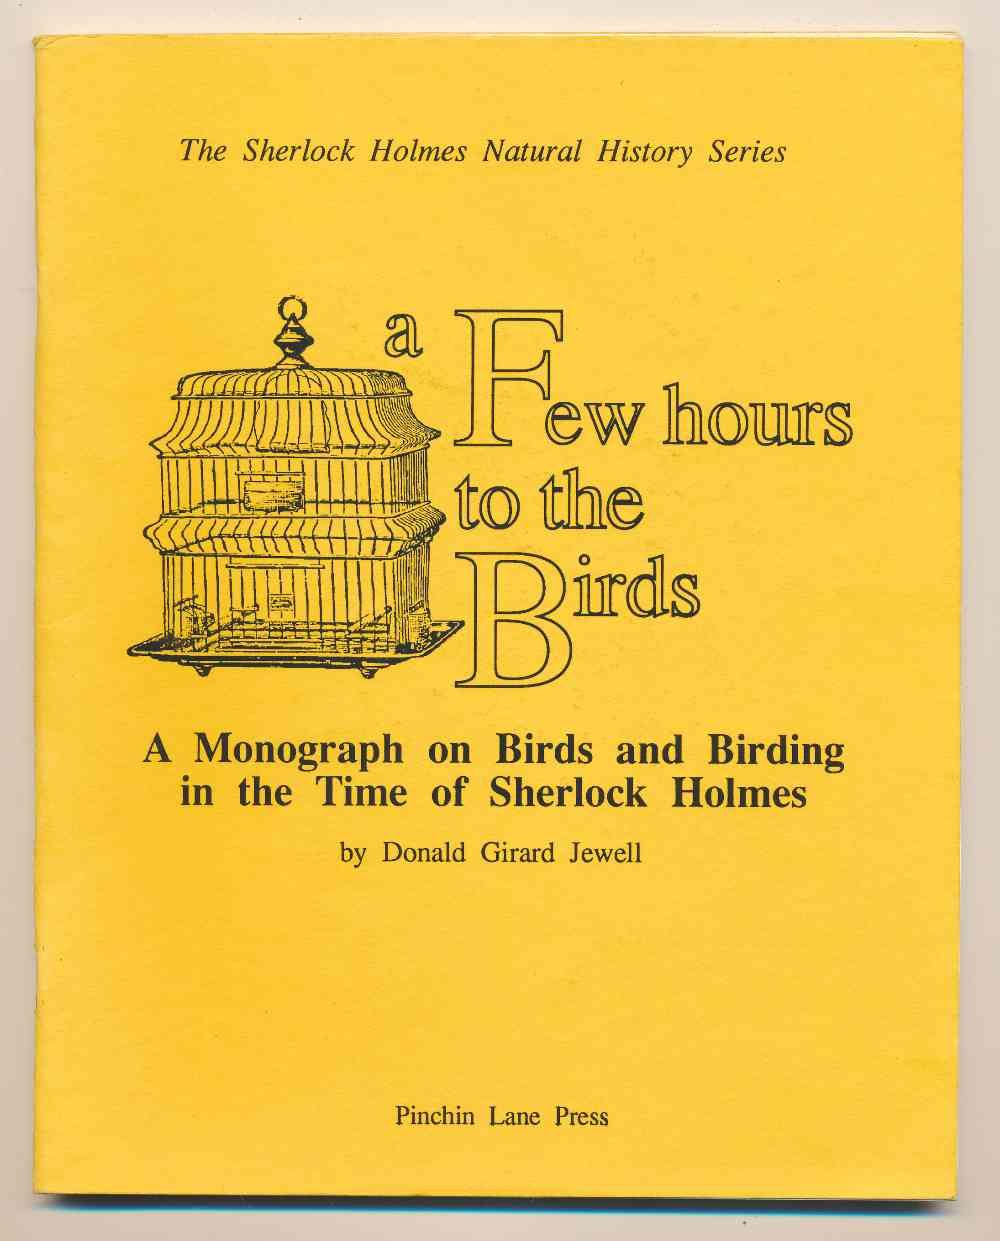 A few hours to the birds : a monograph on birds and birding in the time of Sherlock Holmes